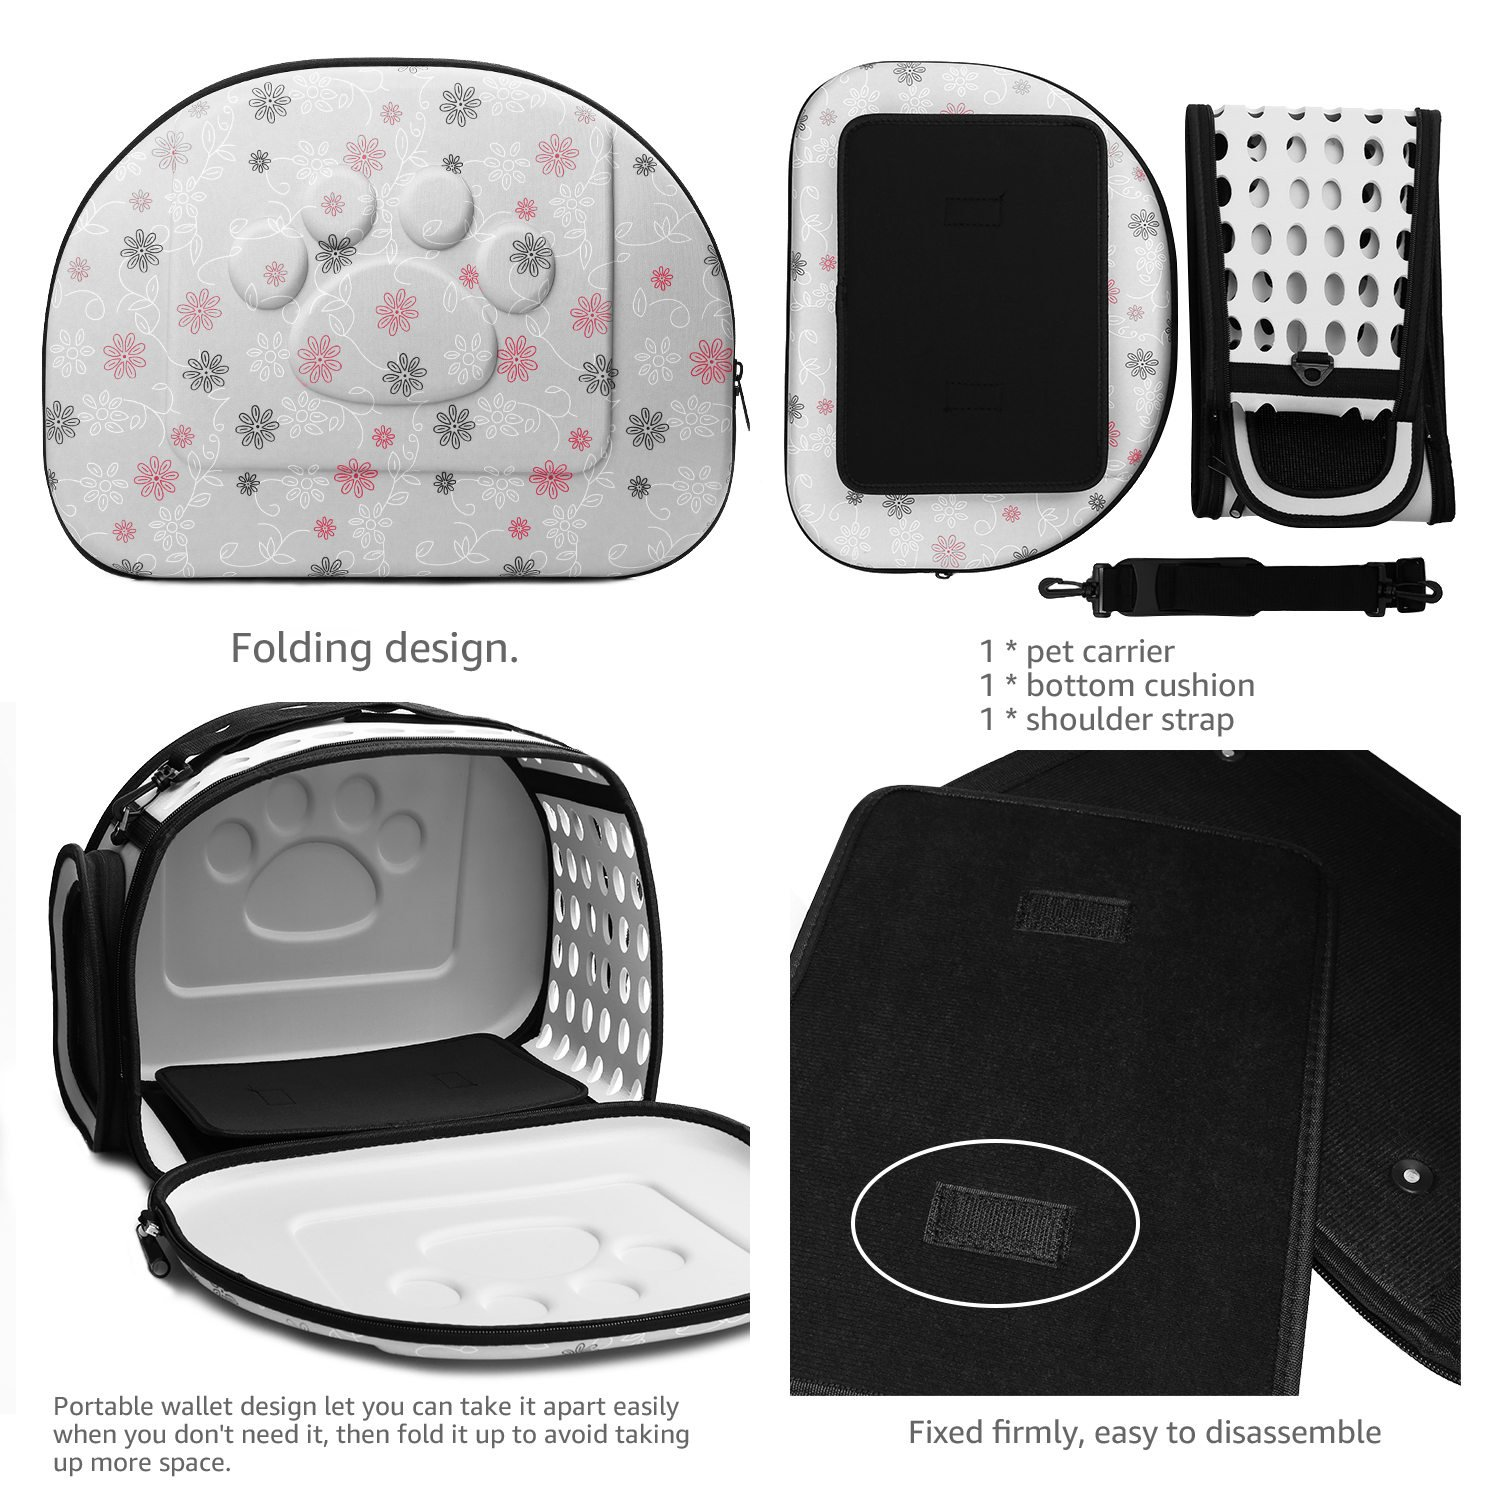 CORALTEA EVA Cute Portable Collapsible for Pets of Medium Size Cats & Dogs Airline Approved Outdoor Under Seat Travel Pet Carrier Soft Sided Puppy Bag (gray) by Coraltea (Image #6)